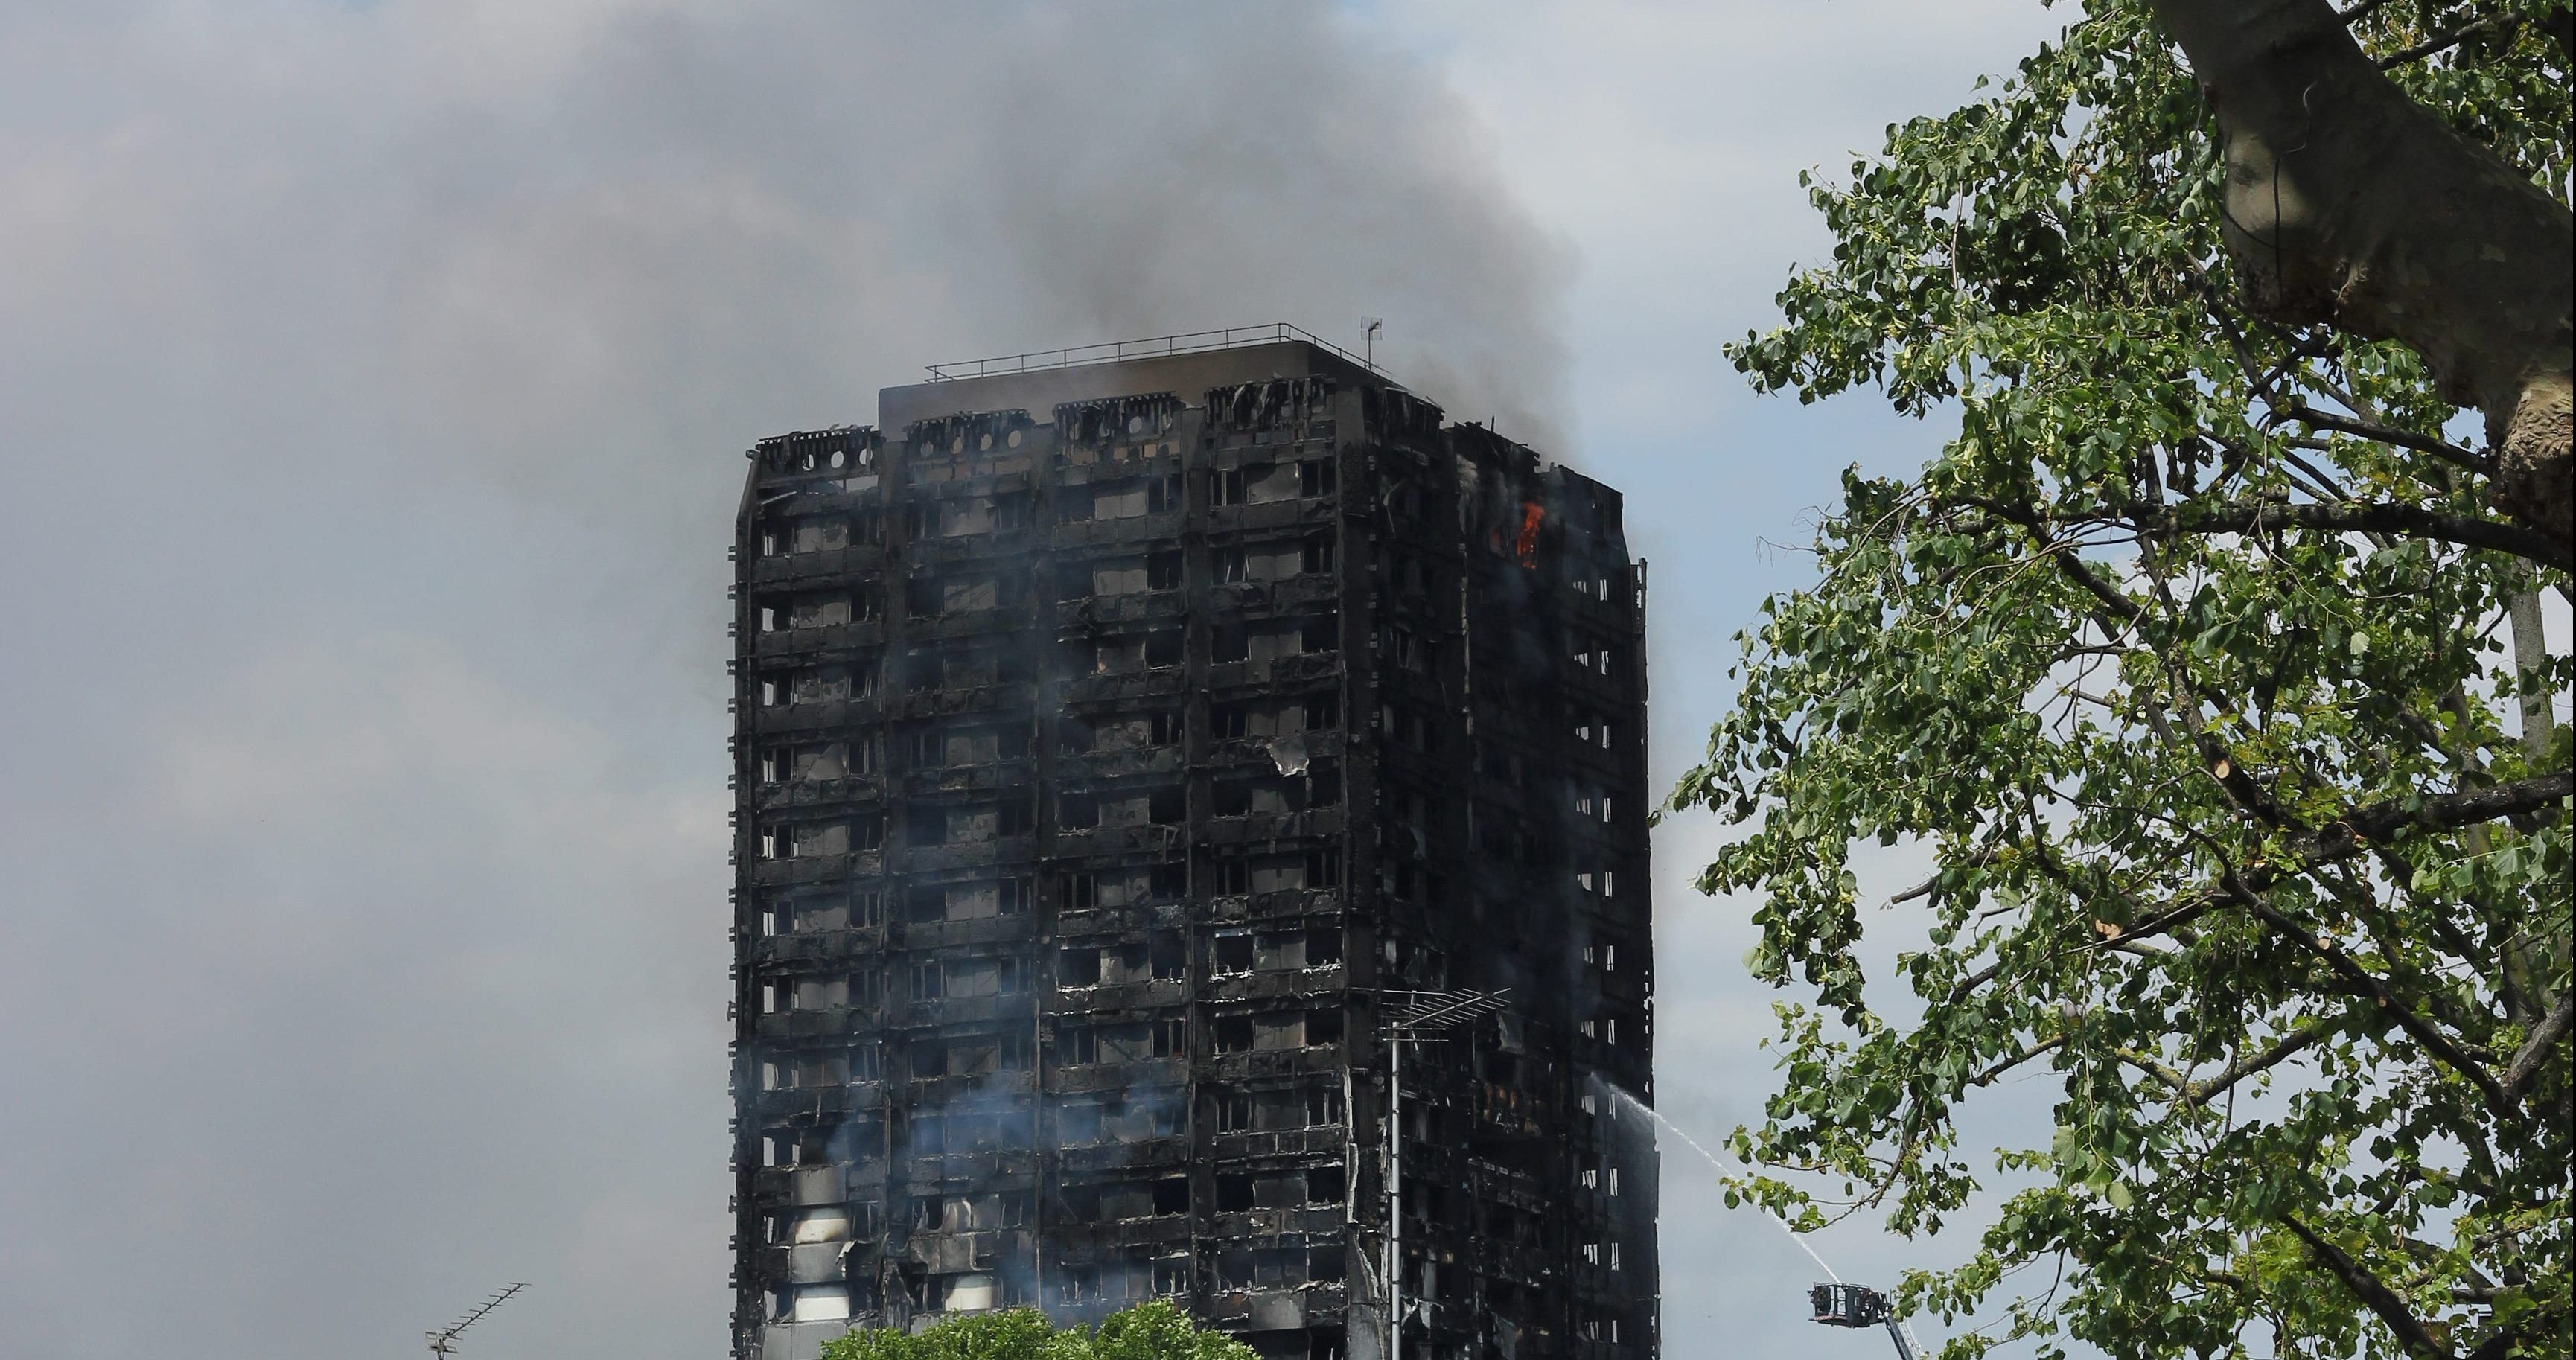 Grenfell survivors demand apology over Jacob Rees-Mogg's 'insensitive' comments